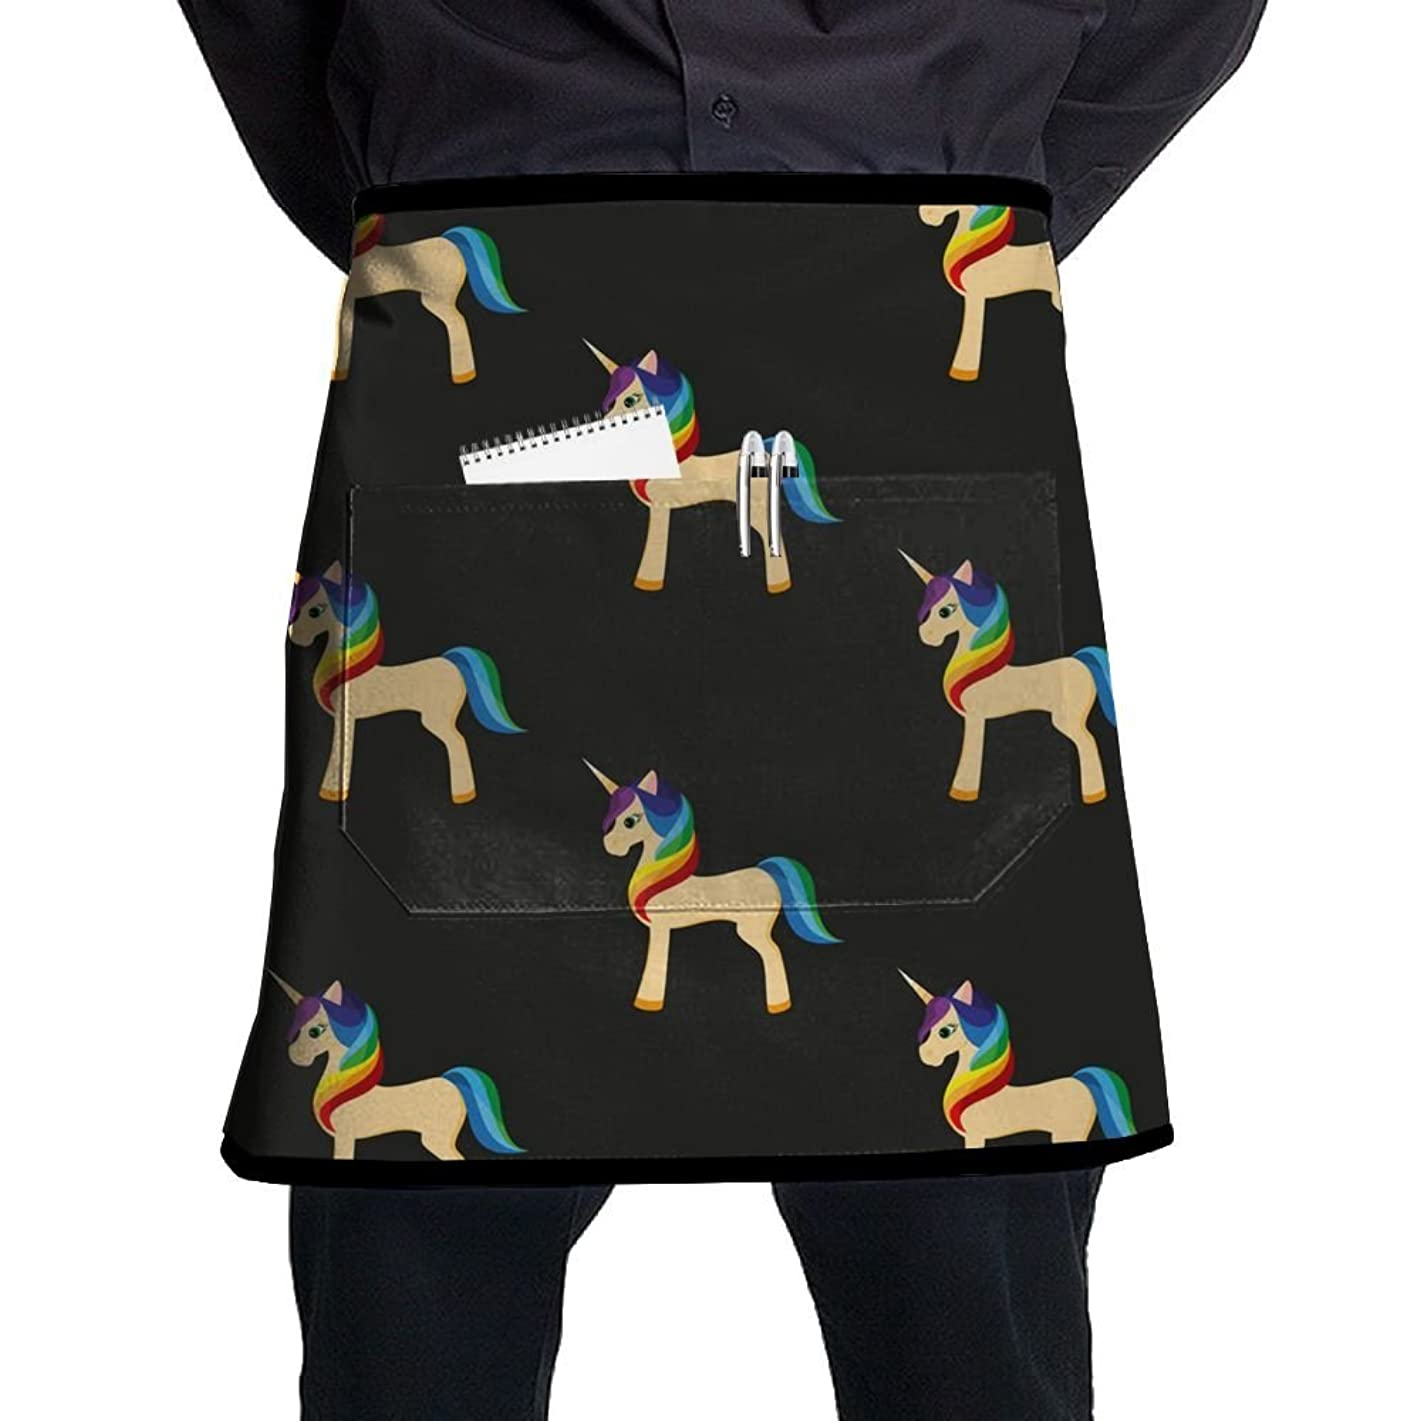 POIUYDG Golden Unicorn With A Rainbow Kitchen Apron With Pocket Half Length Short Waist Apron With Pocket For Men And Women